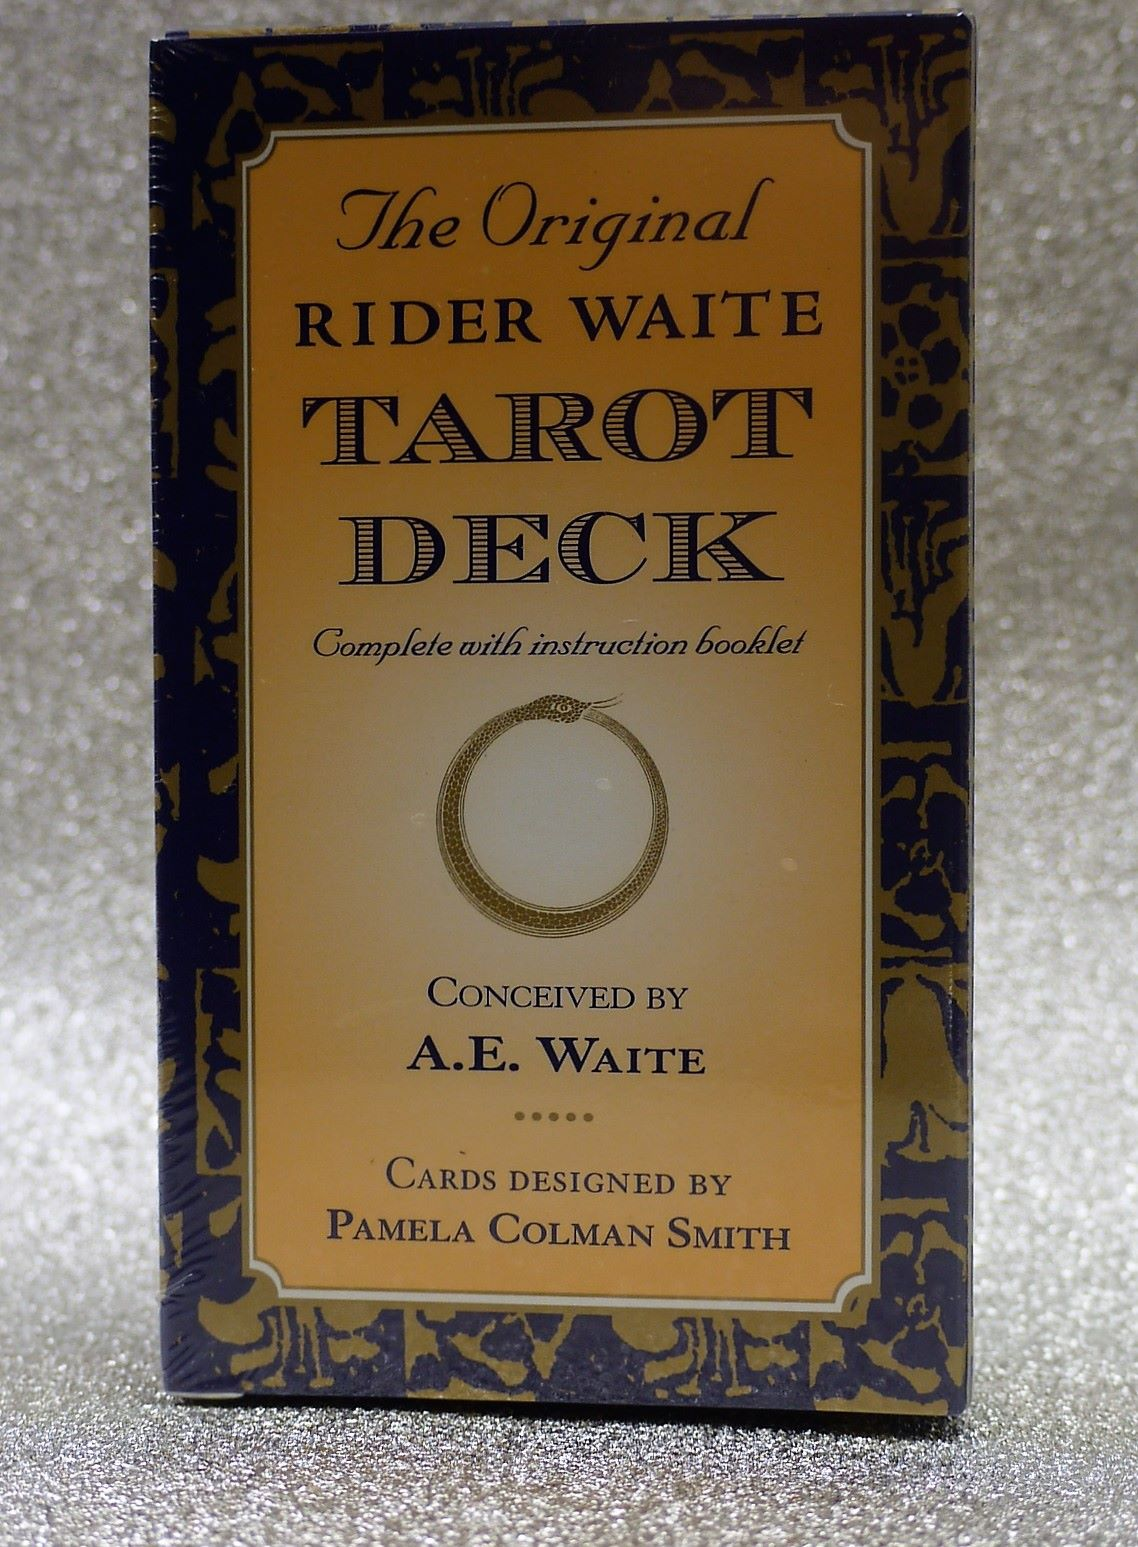 Rider Waite Tarot Cards